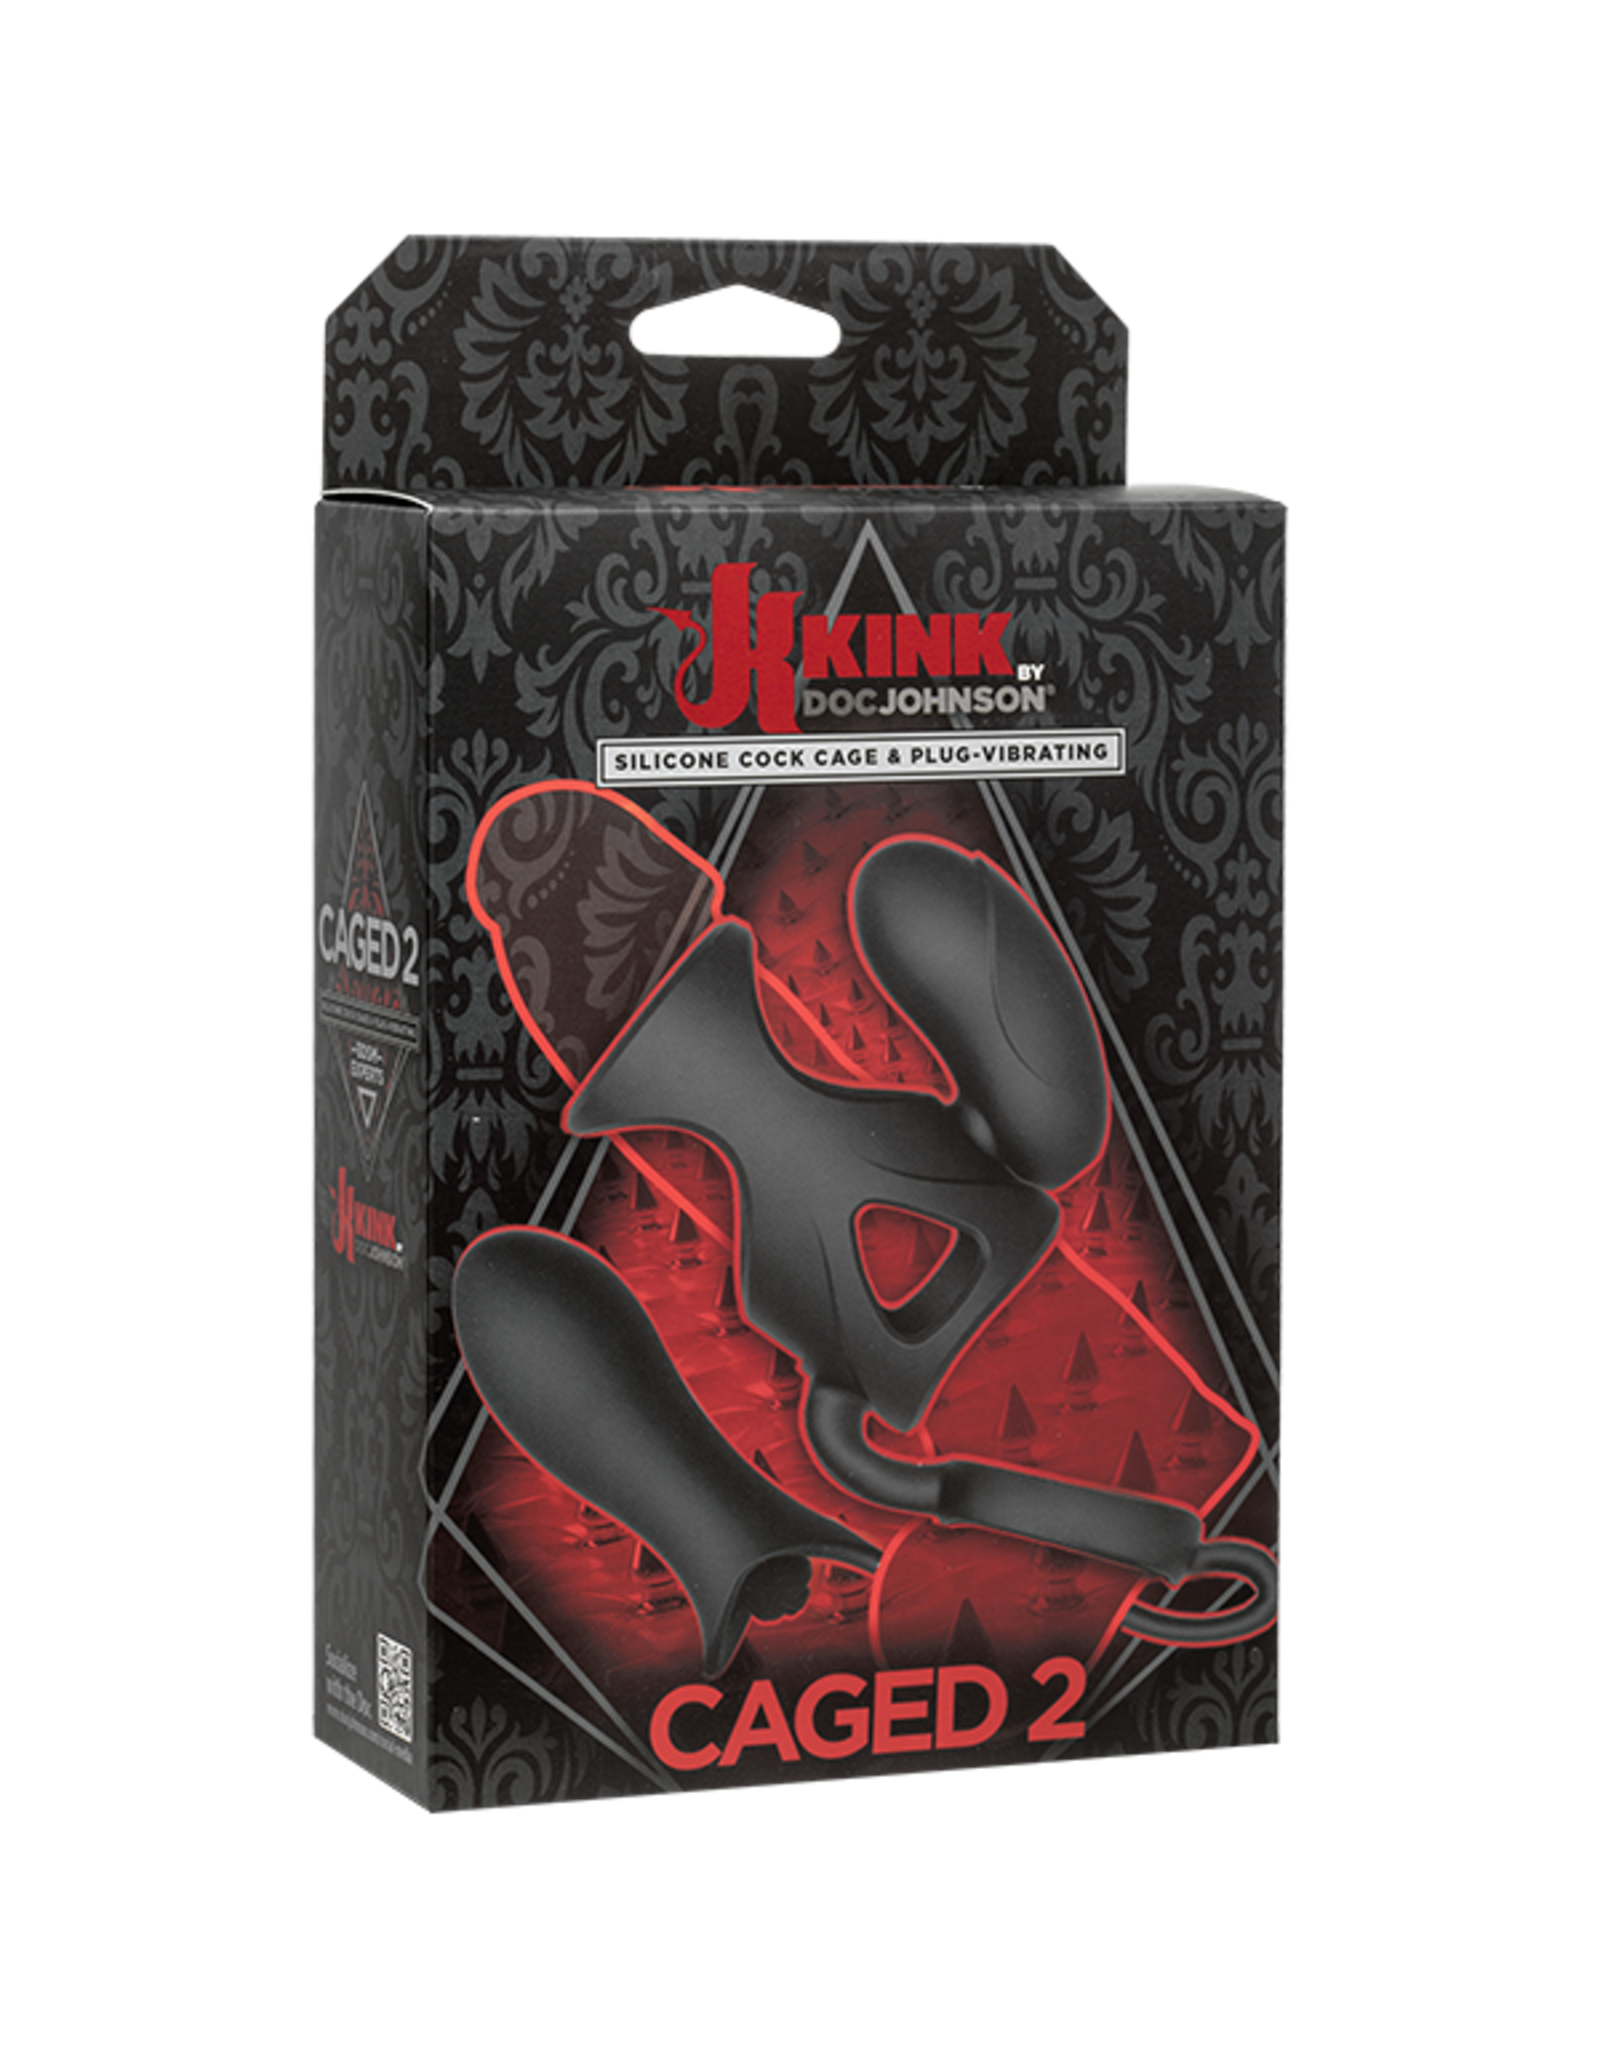 KINK Clearance KINK Caged 2 Silicone Cock Cage/Vib